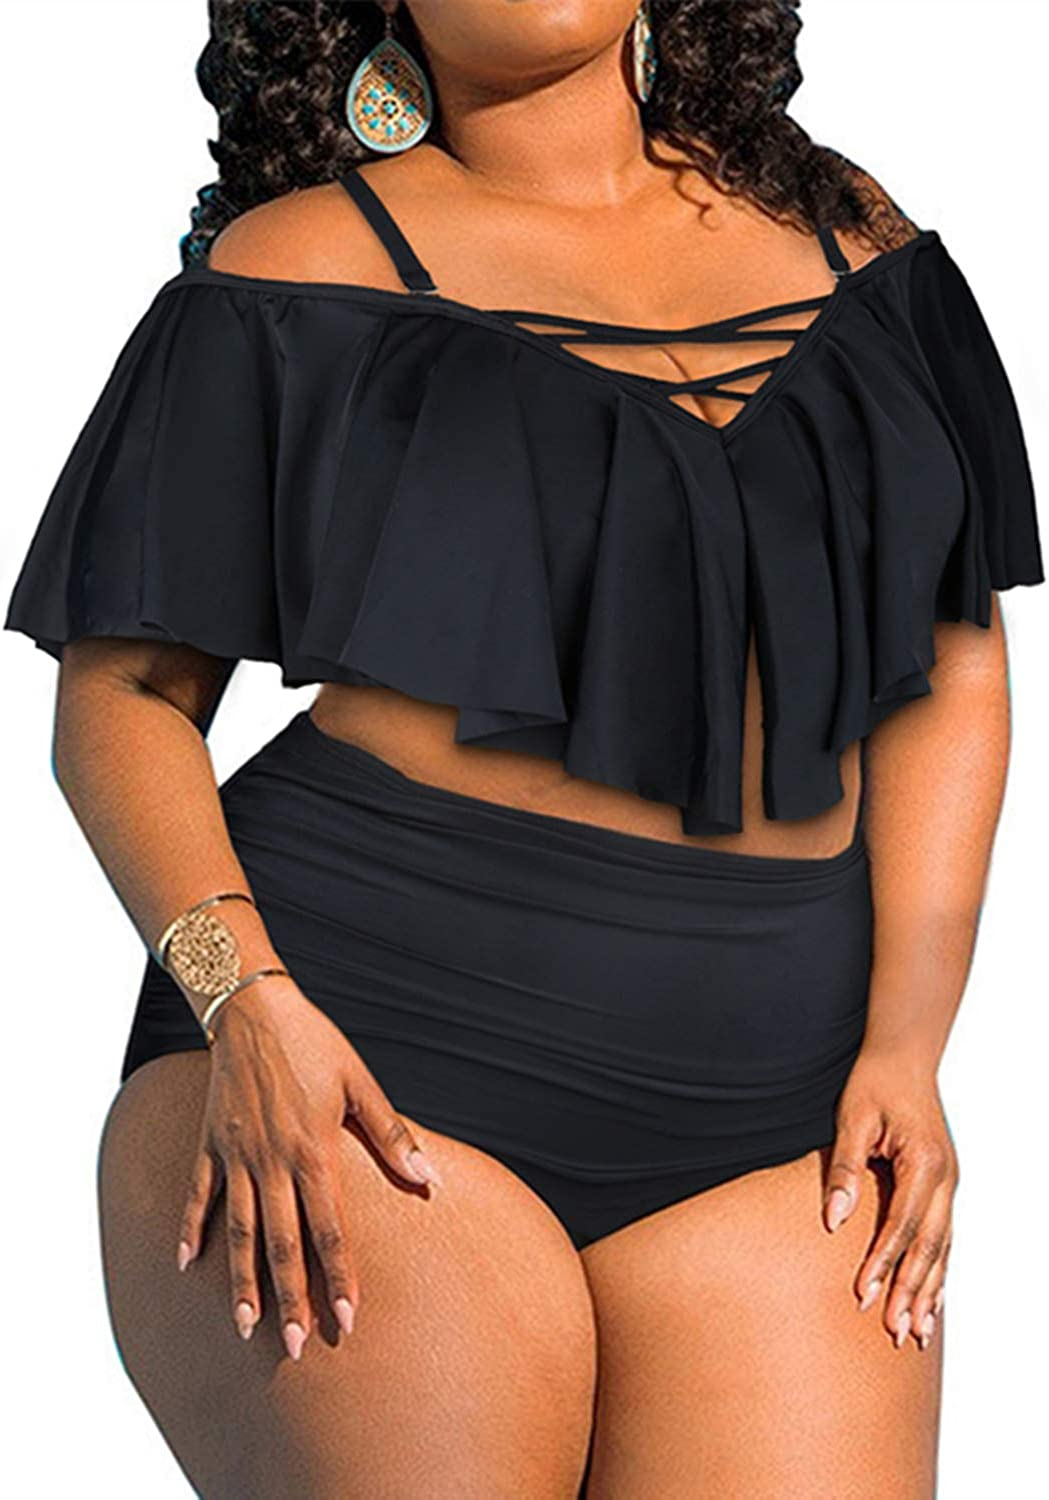 BeachQueen Womens Plus Size Swimsuit Ruffle Off Shoulder Bikini Ruched Swimwear